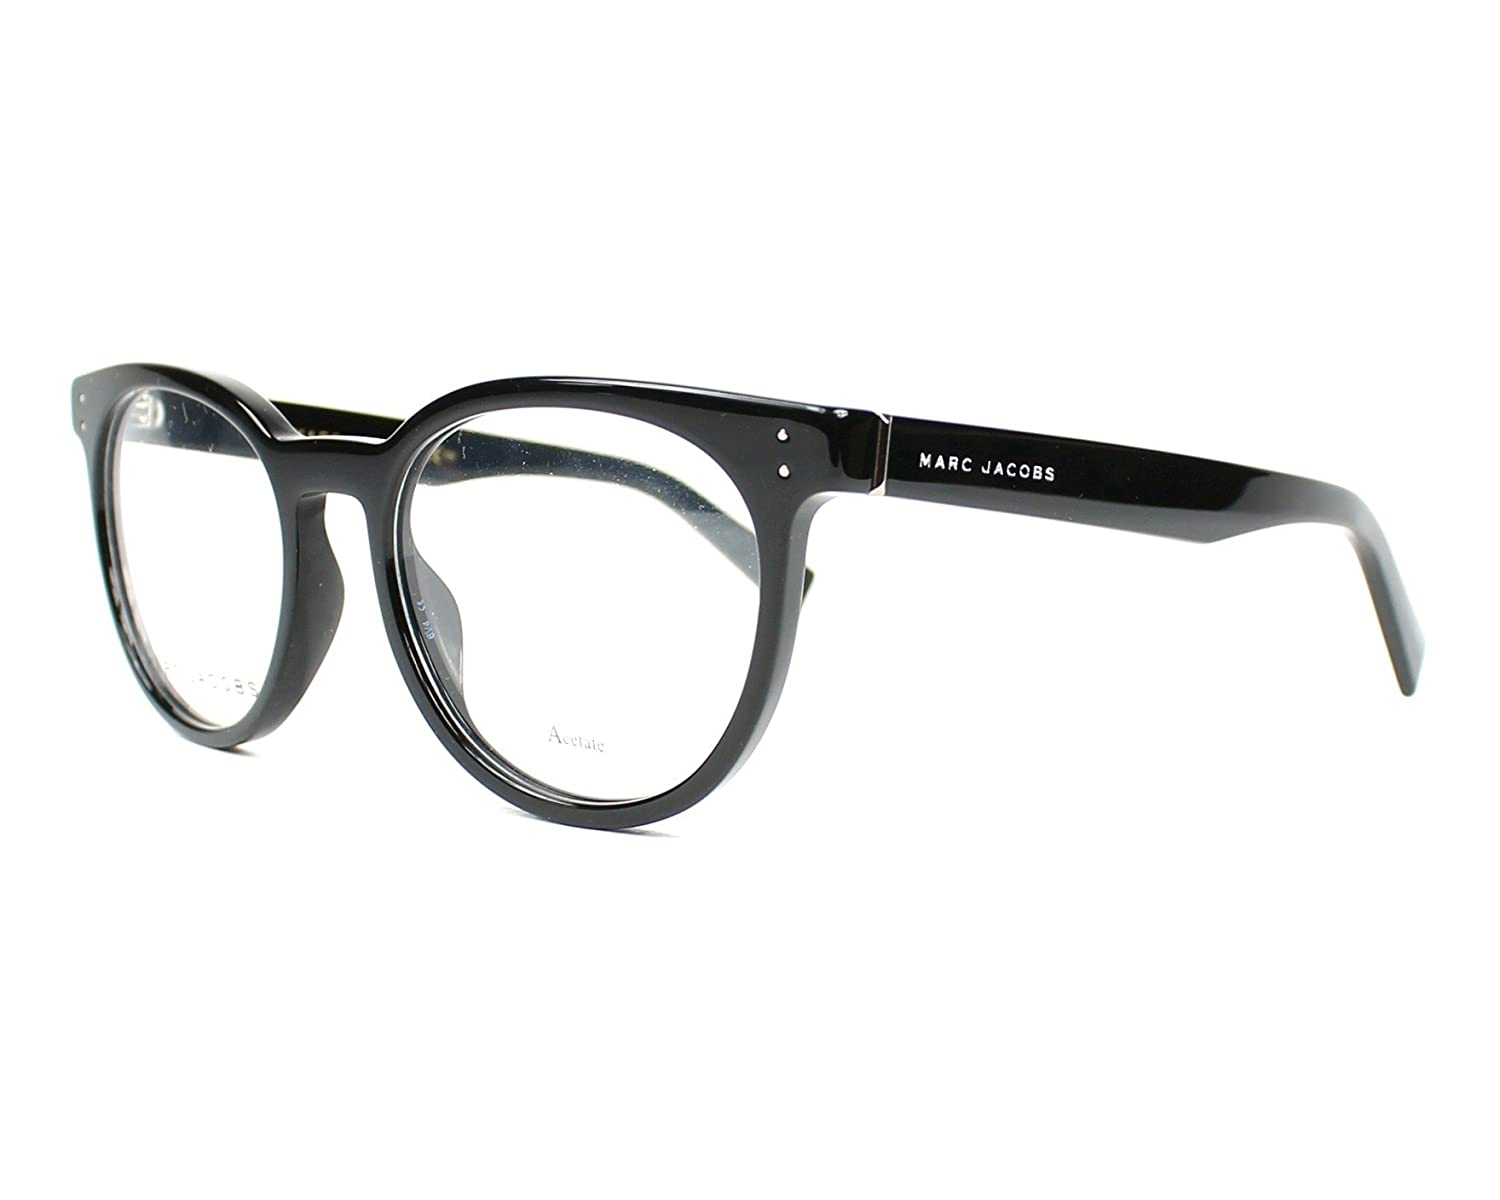 3171bcb53d8 Amazon.com  Marc Jacobs Marc 126 0807 Black Eyeglasses  Clothing